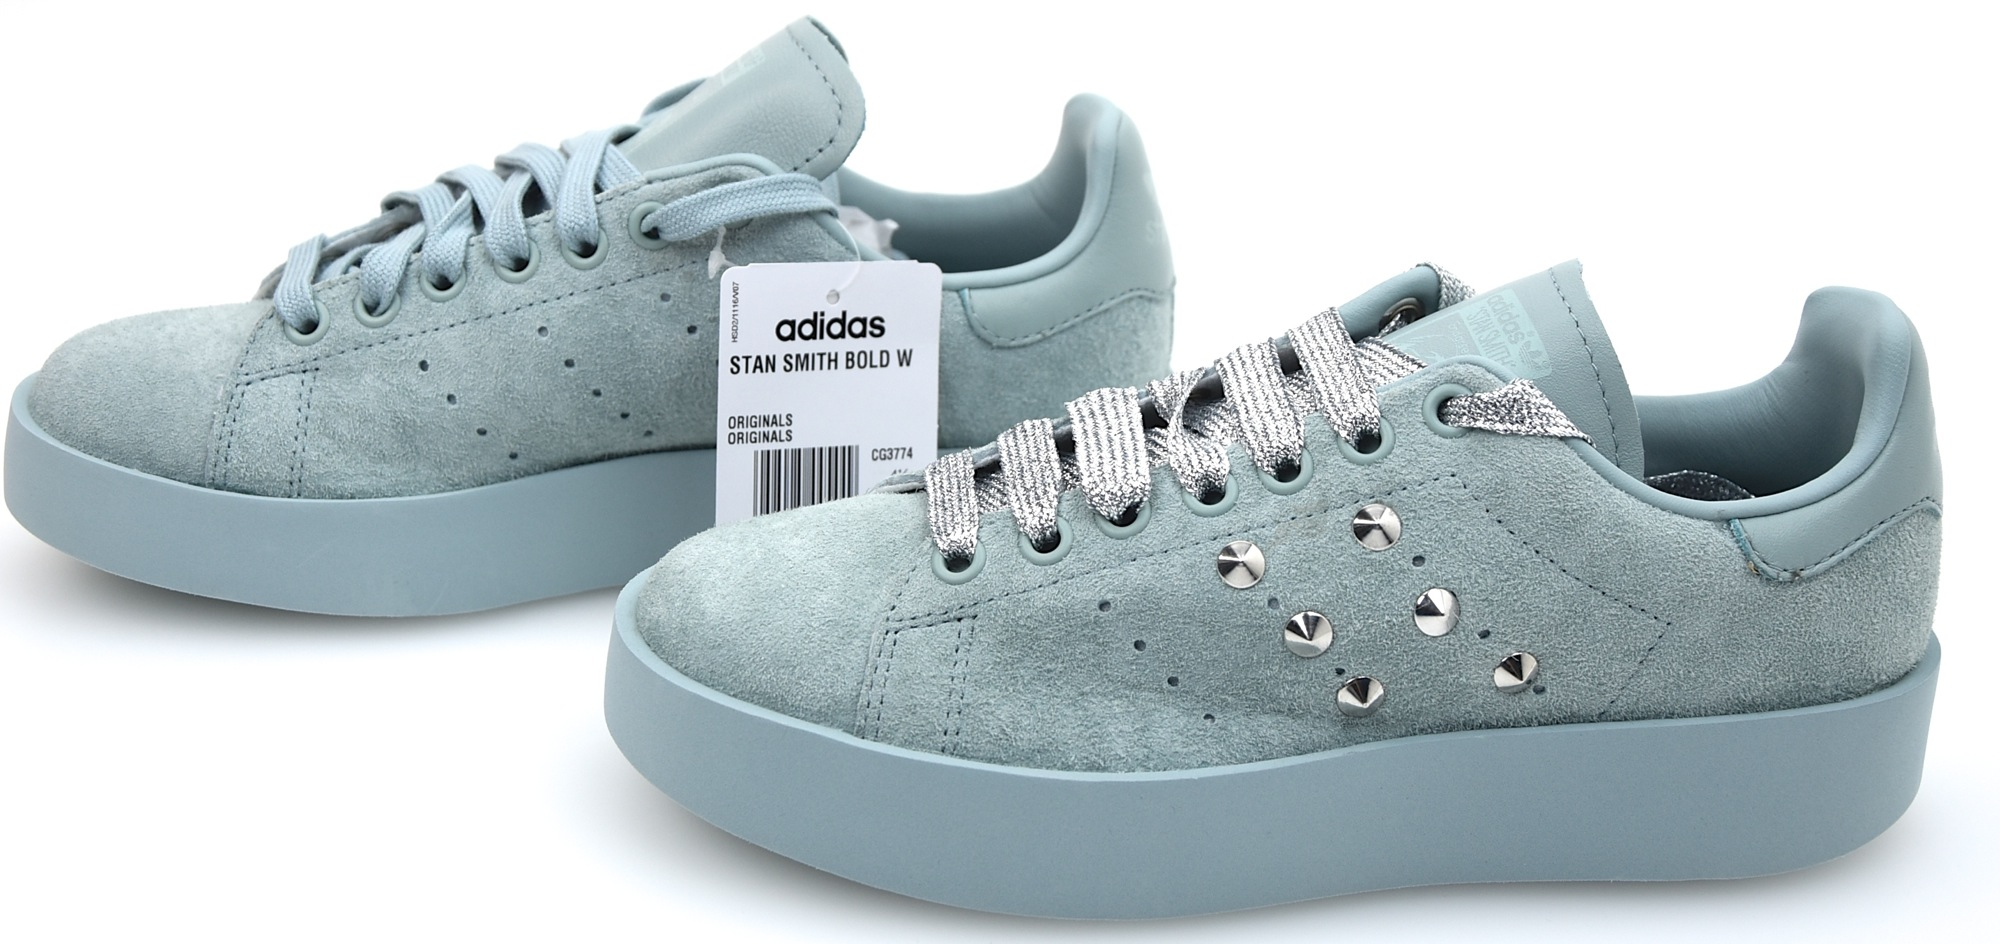 online store 06d63 0aea5 Details about ADIDAS WOMAN SNEAKER SHOES CASUAL FREE TIME WITH WEDGE CG3774  S SMITH BOLD W